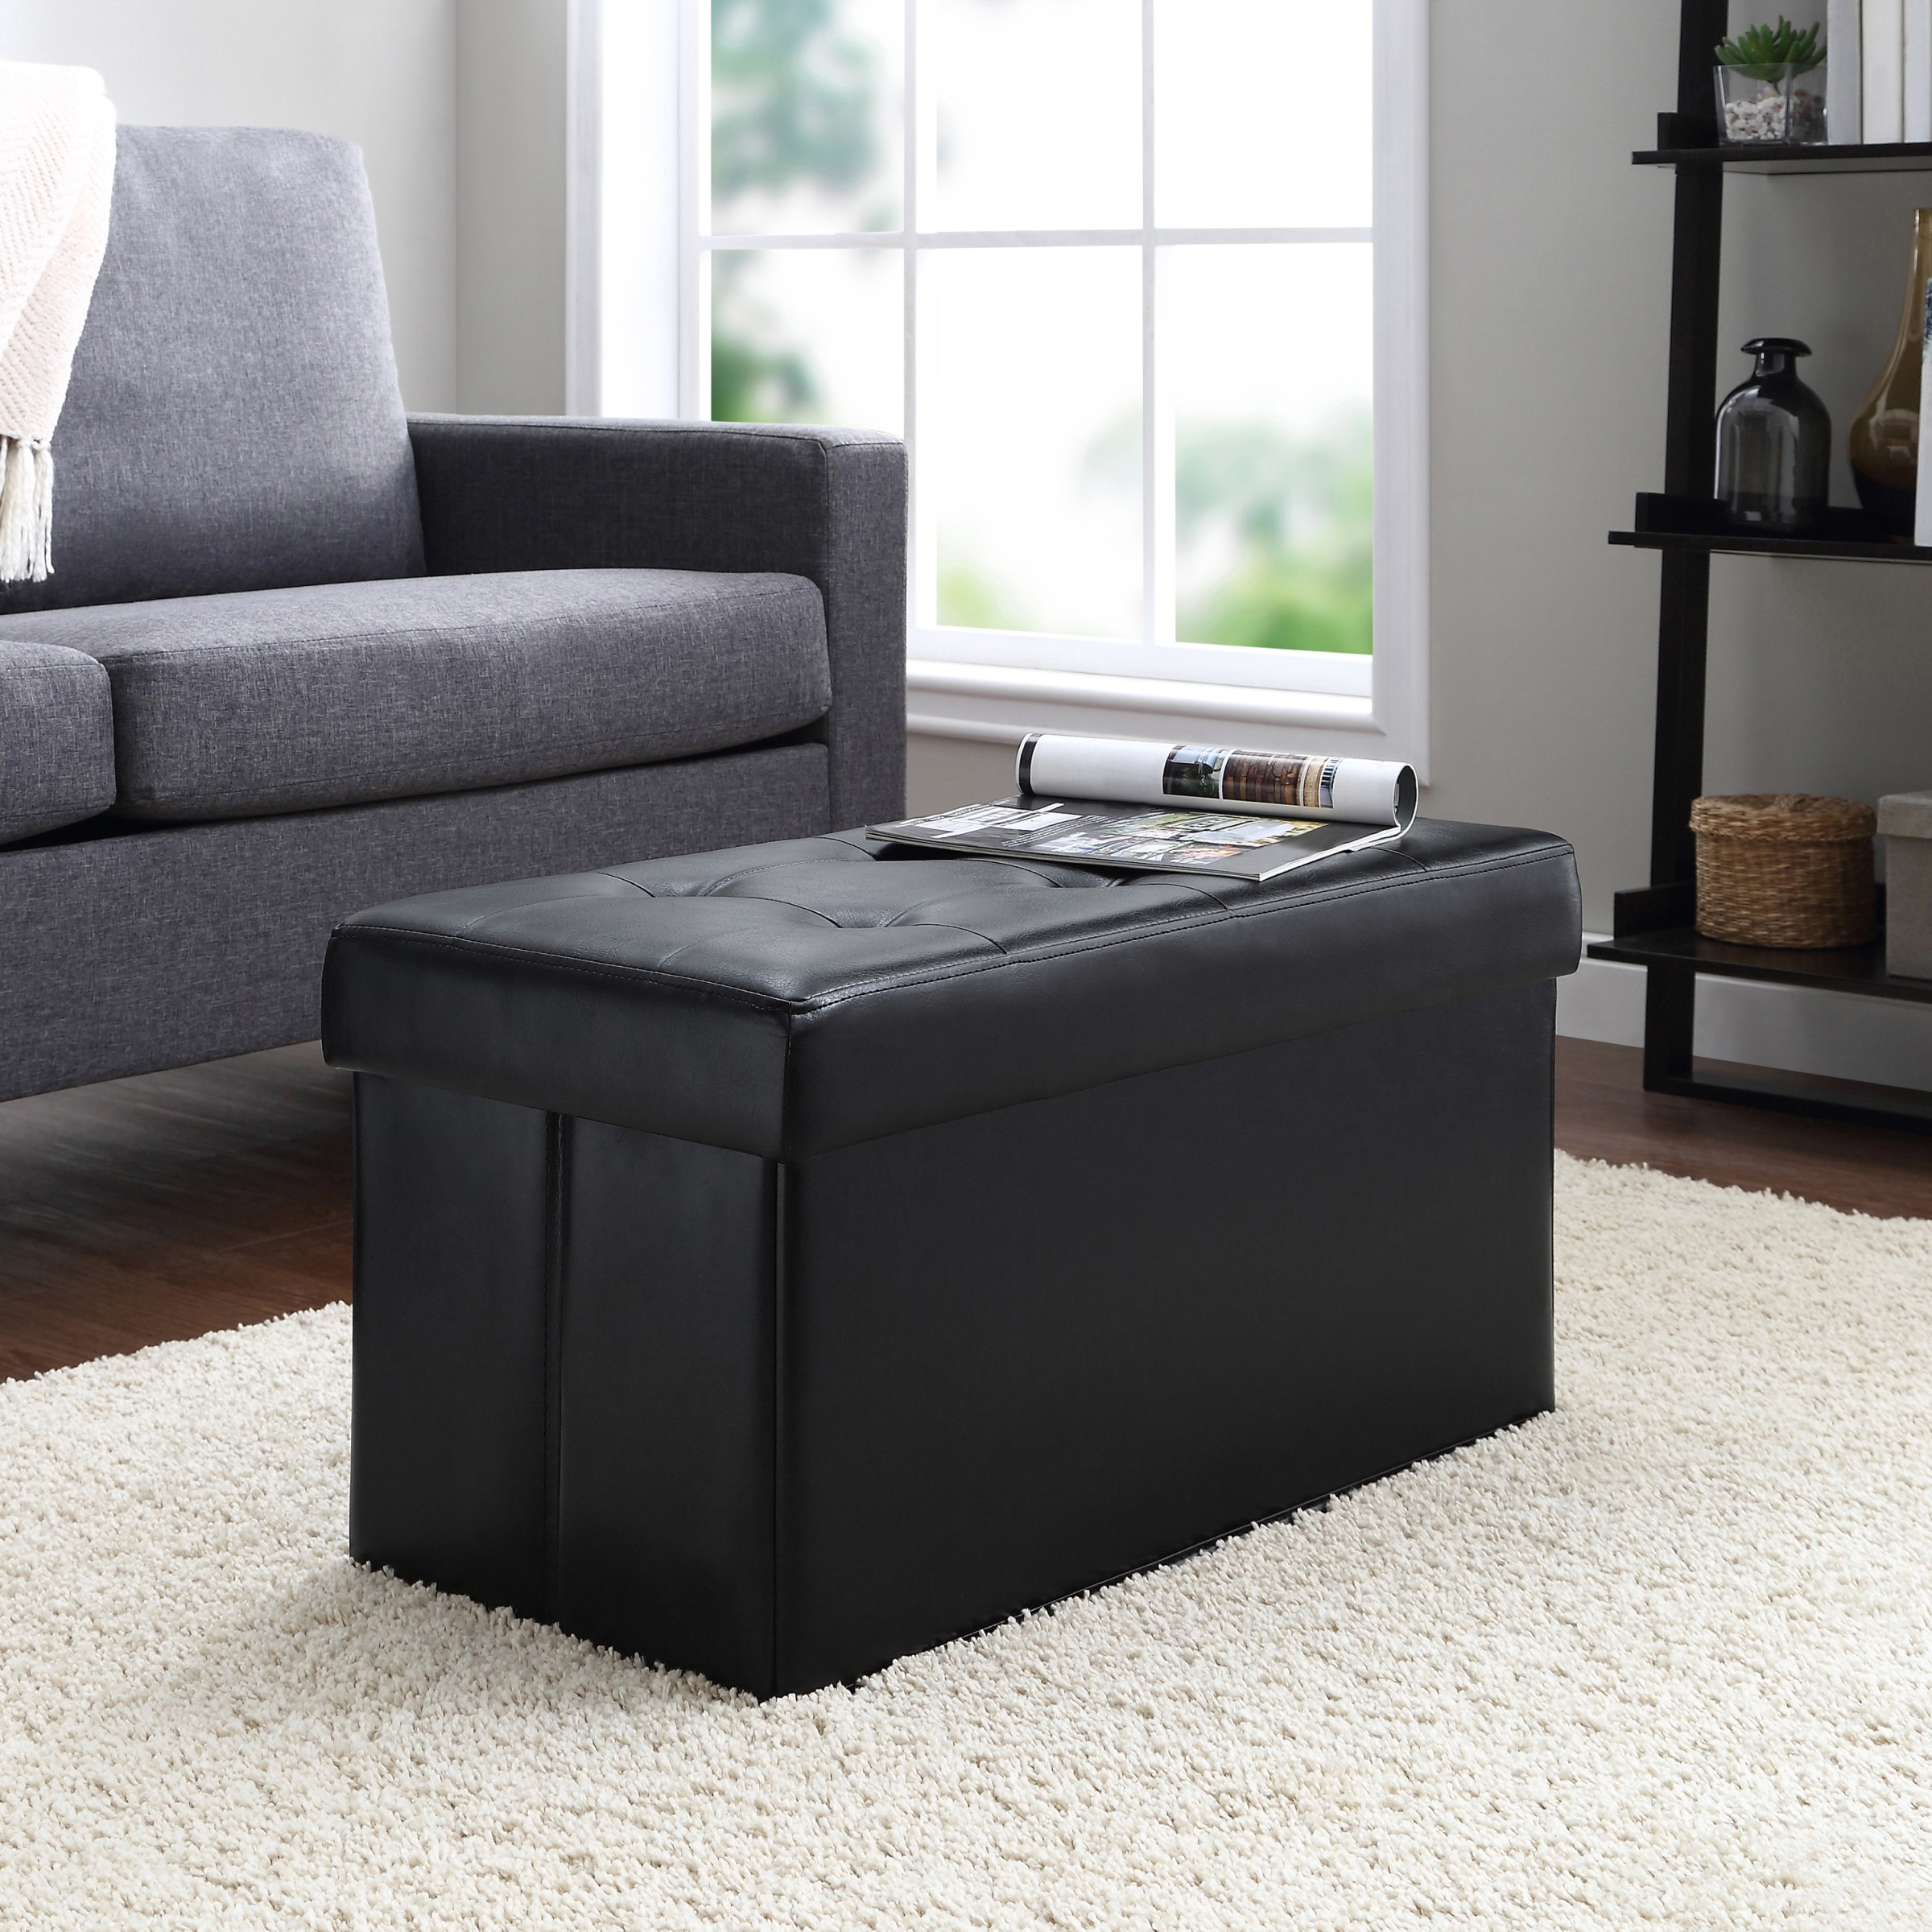 mainstays collapsible storage ottoman quilted black faux leather